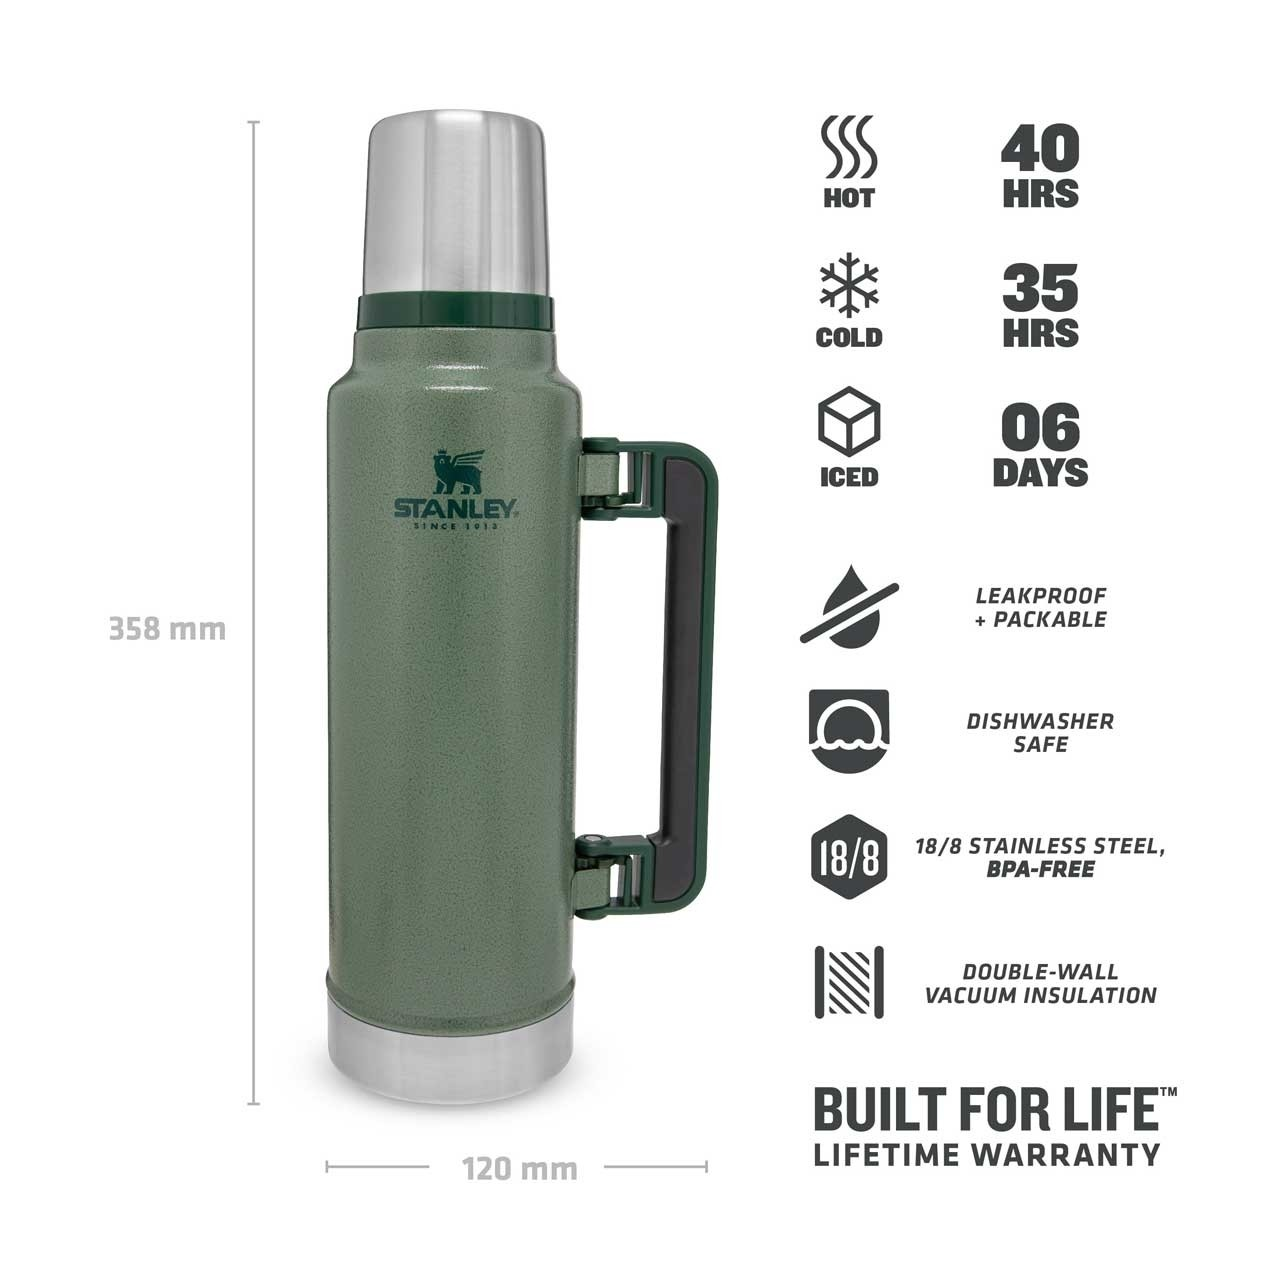 Thermo - Flasche Stanley Classic 1,4 l